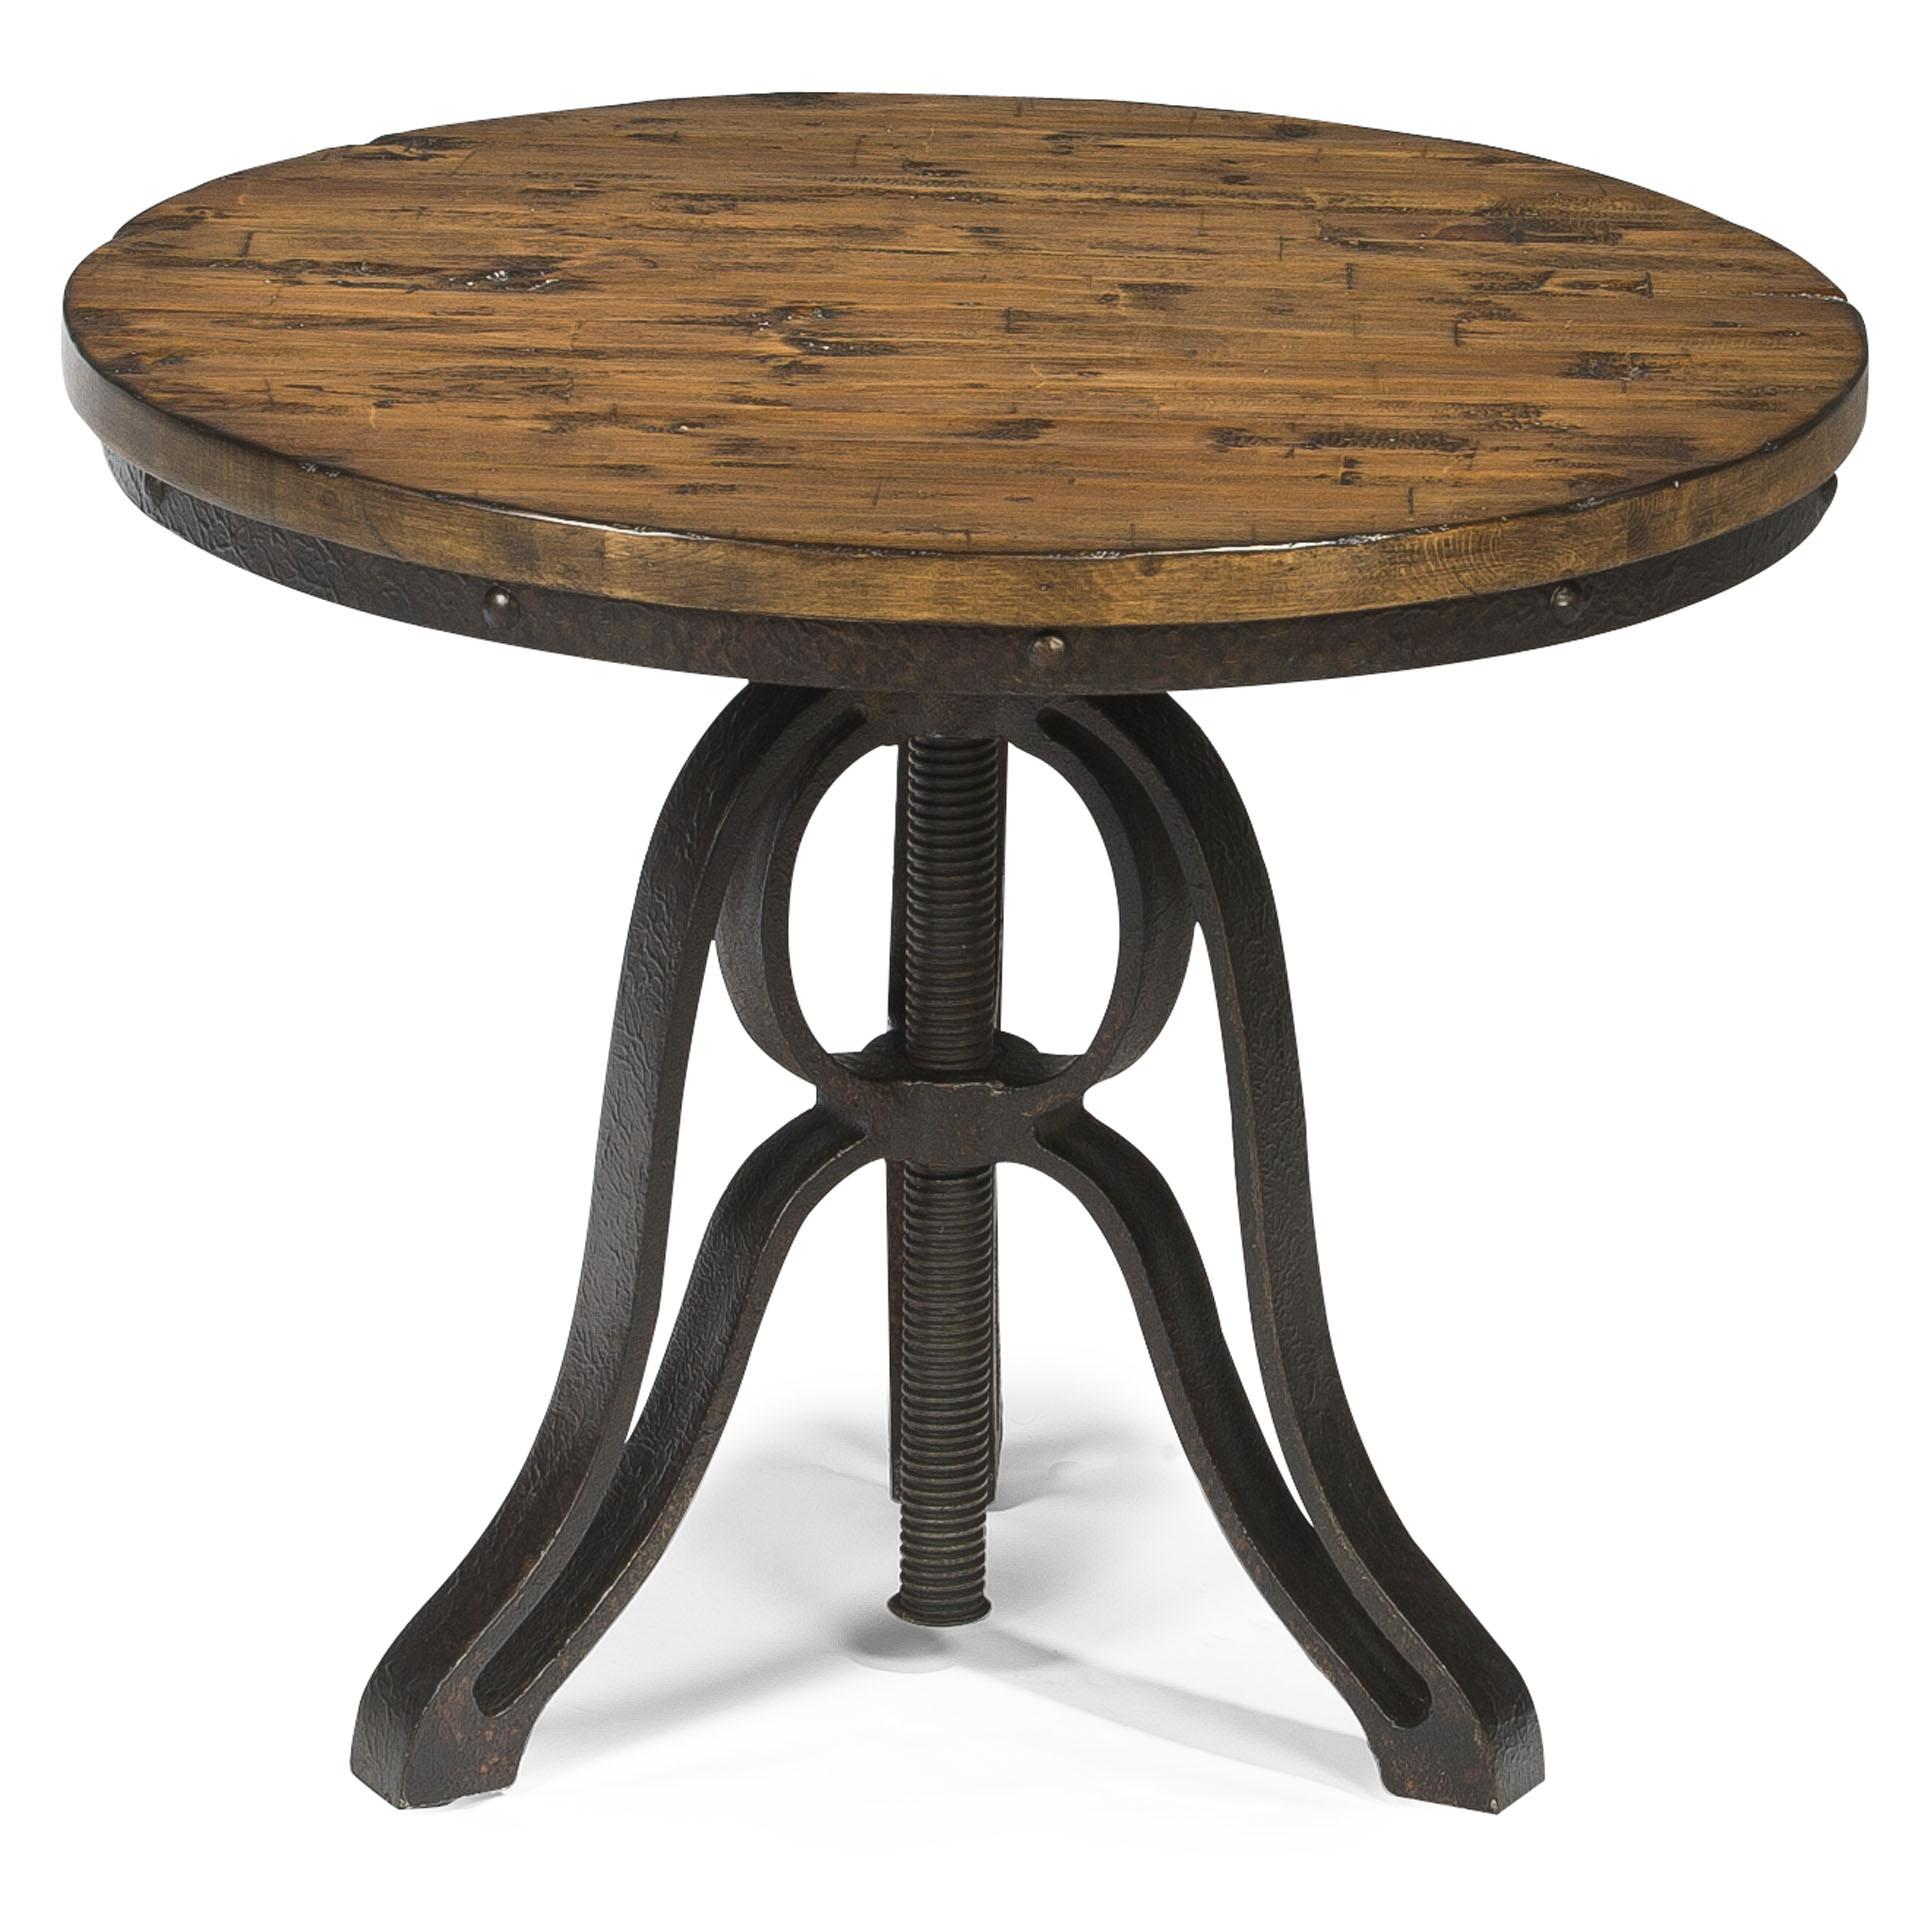 Magnussen Home Cranfill Round End Table - Item Number: T2299-05